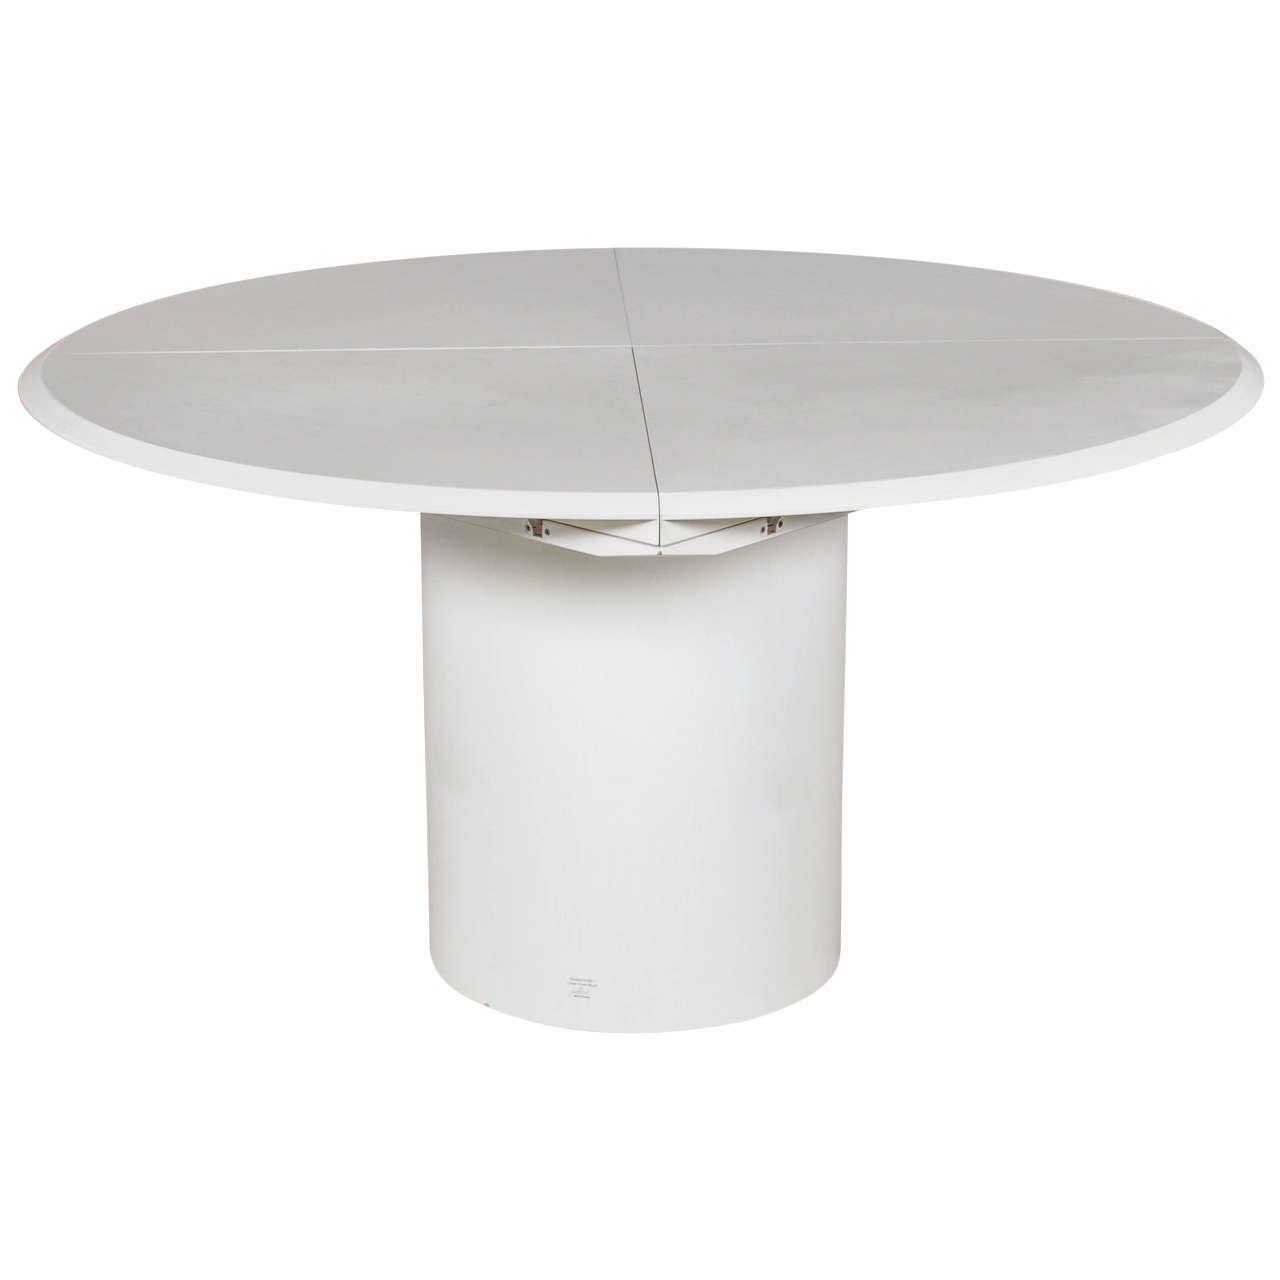 Fantastisch Multifunctional Round, Square And Oval Dining Table For Rosenthal  Einrichtung For Sale